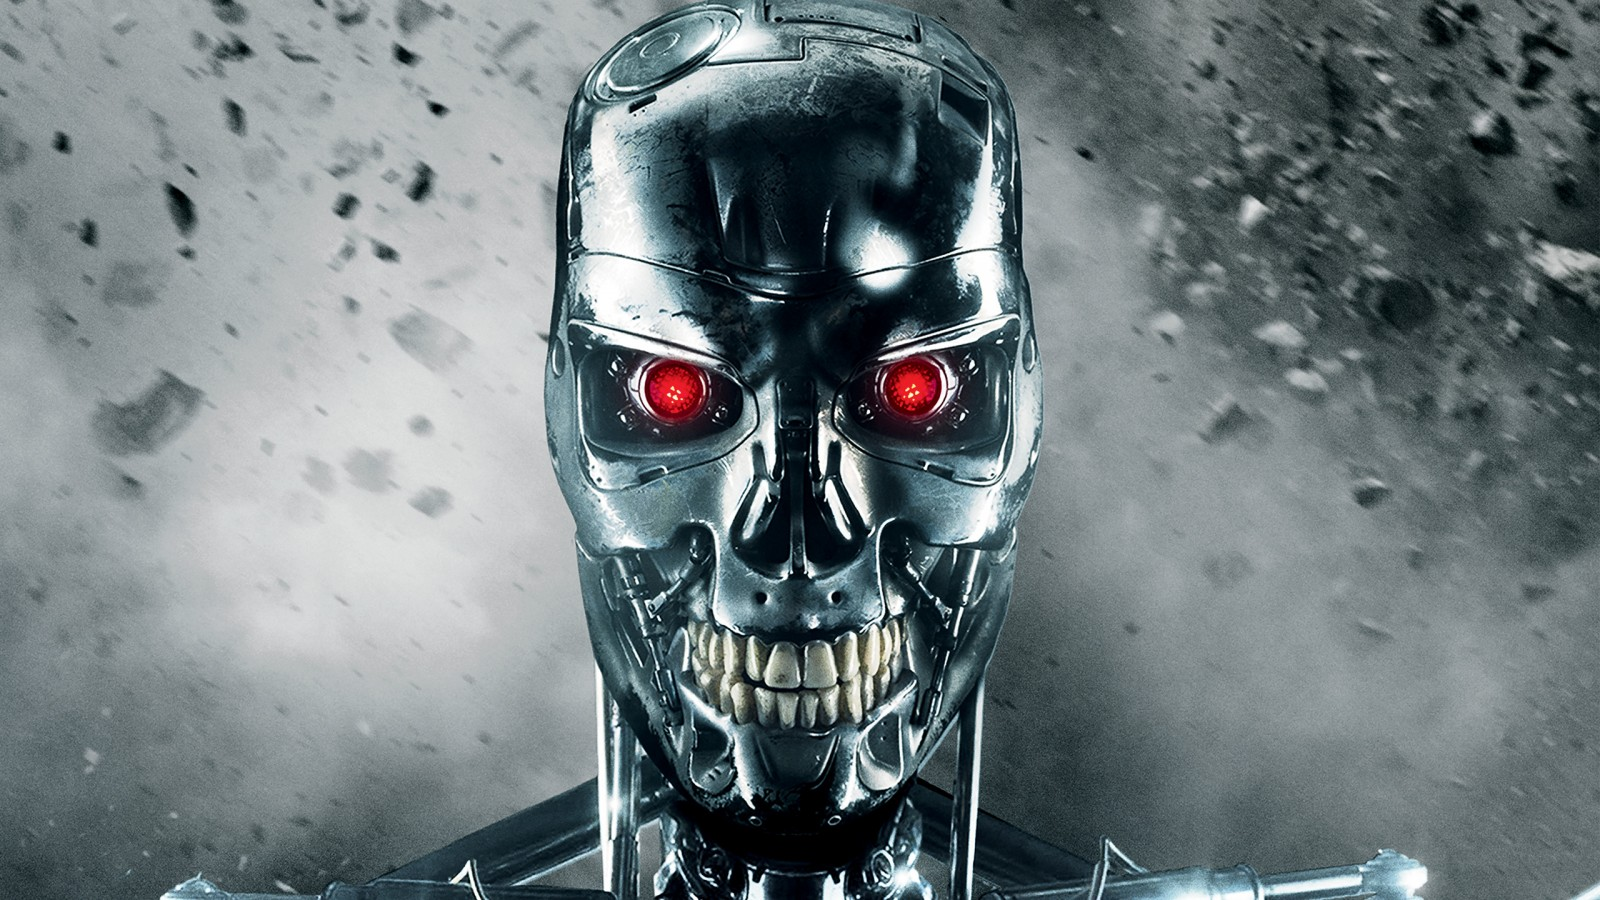 Top Hd Wallpapers 1080p T 800 Terminator Genisys Wallpapers Hd Wallpapers Id